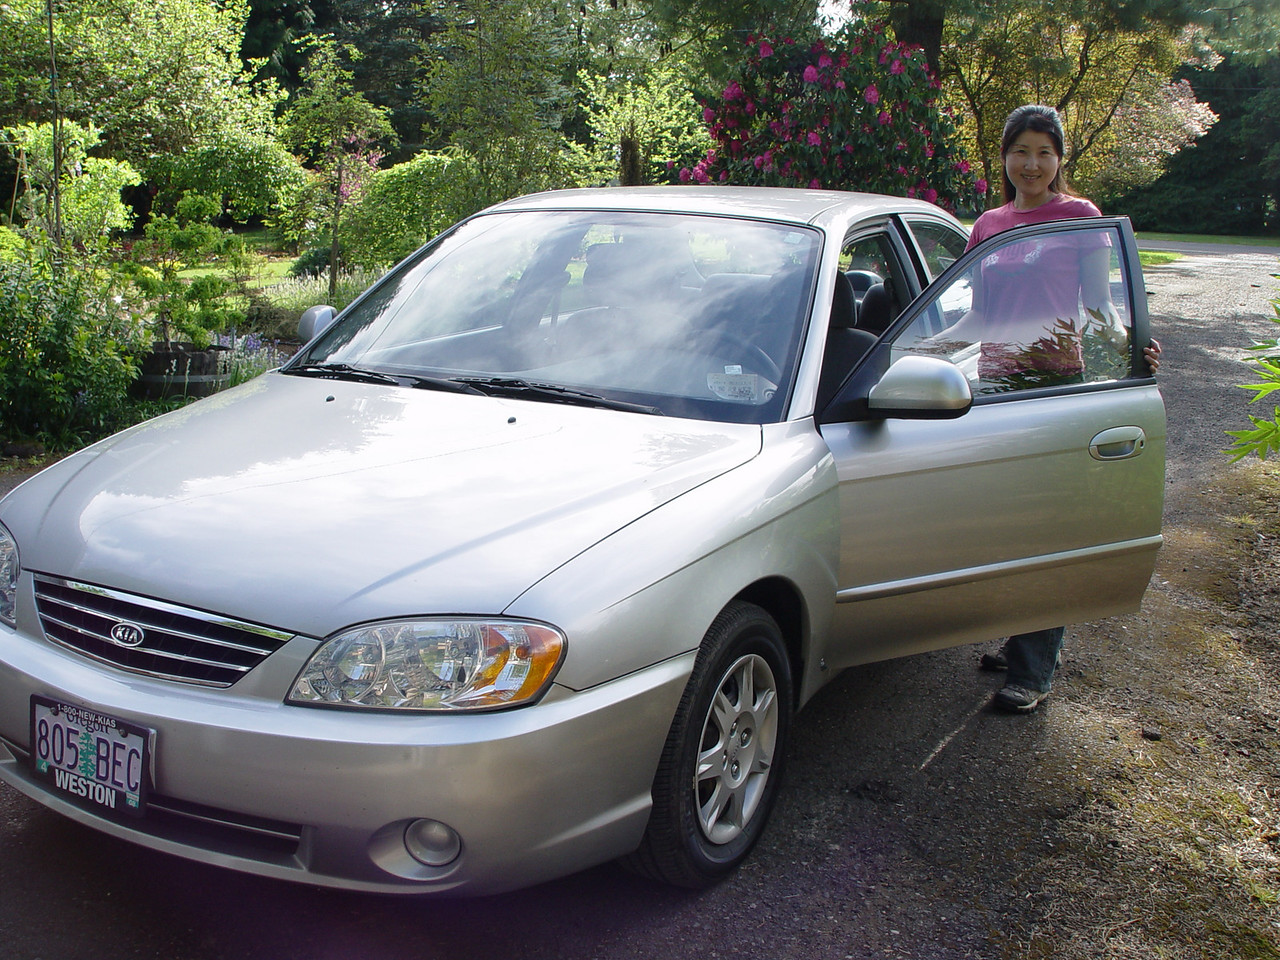 Chiyoko gets ready to take on the American Road...